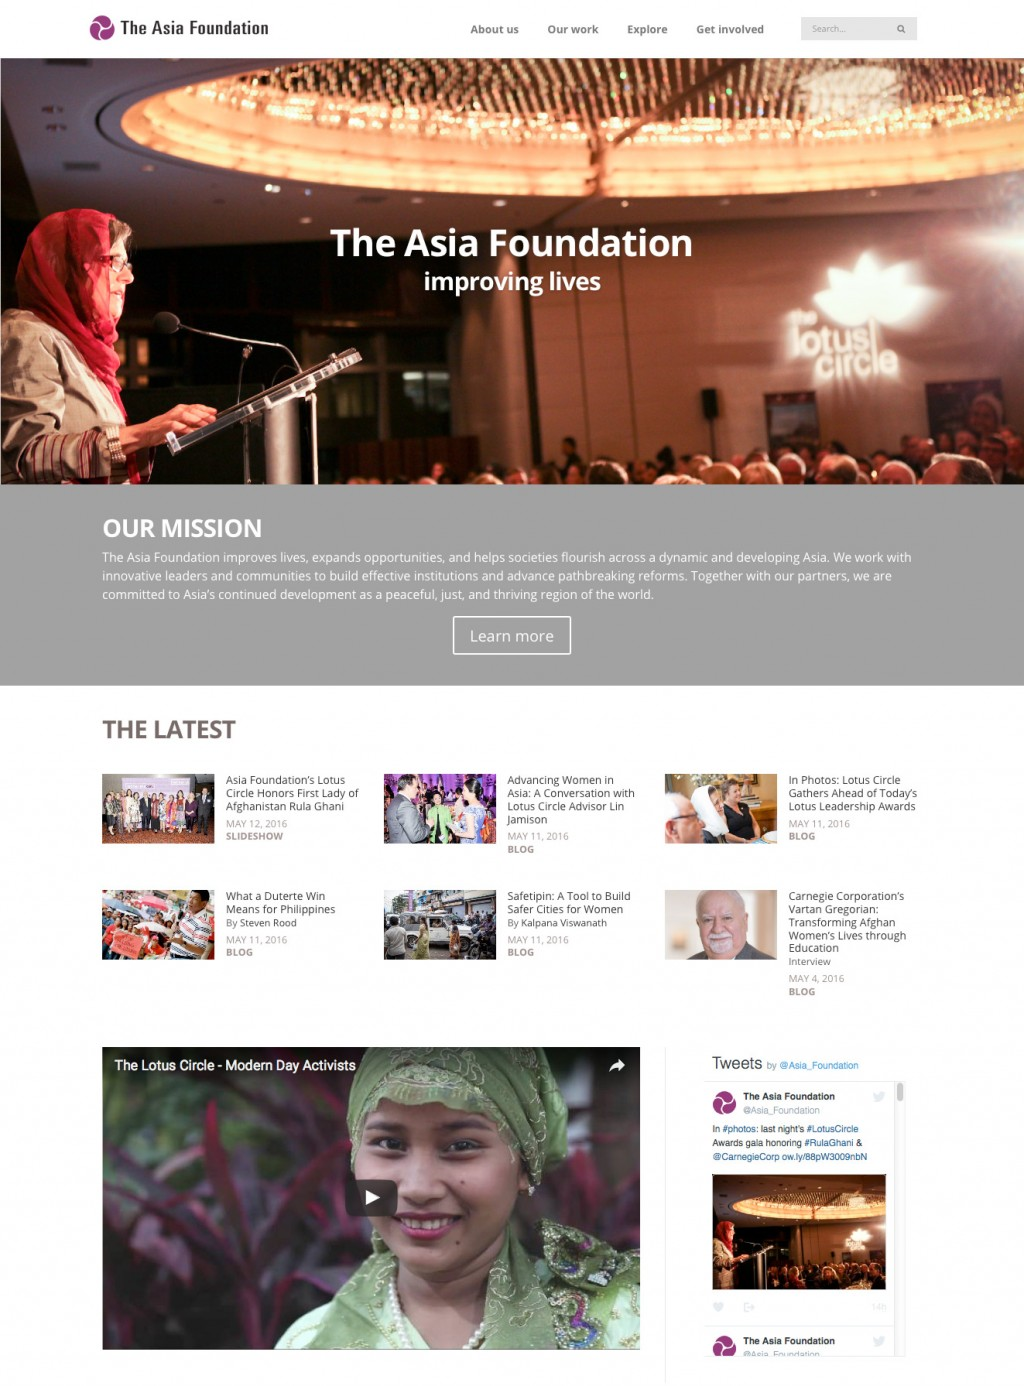 http://asiafoundation.org